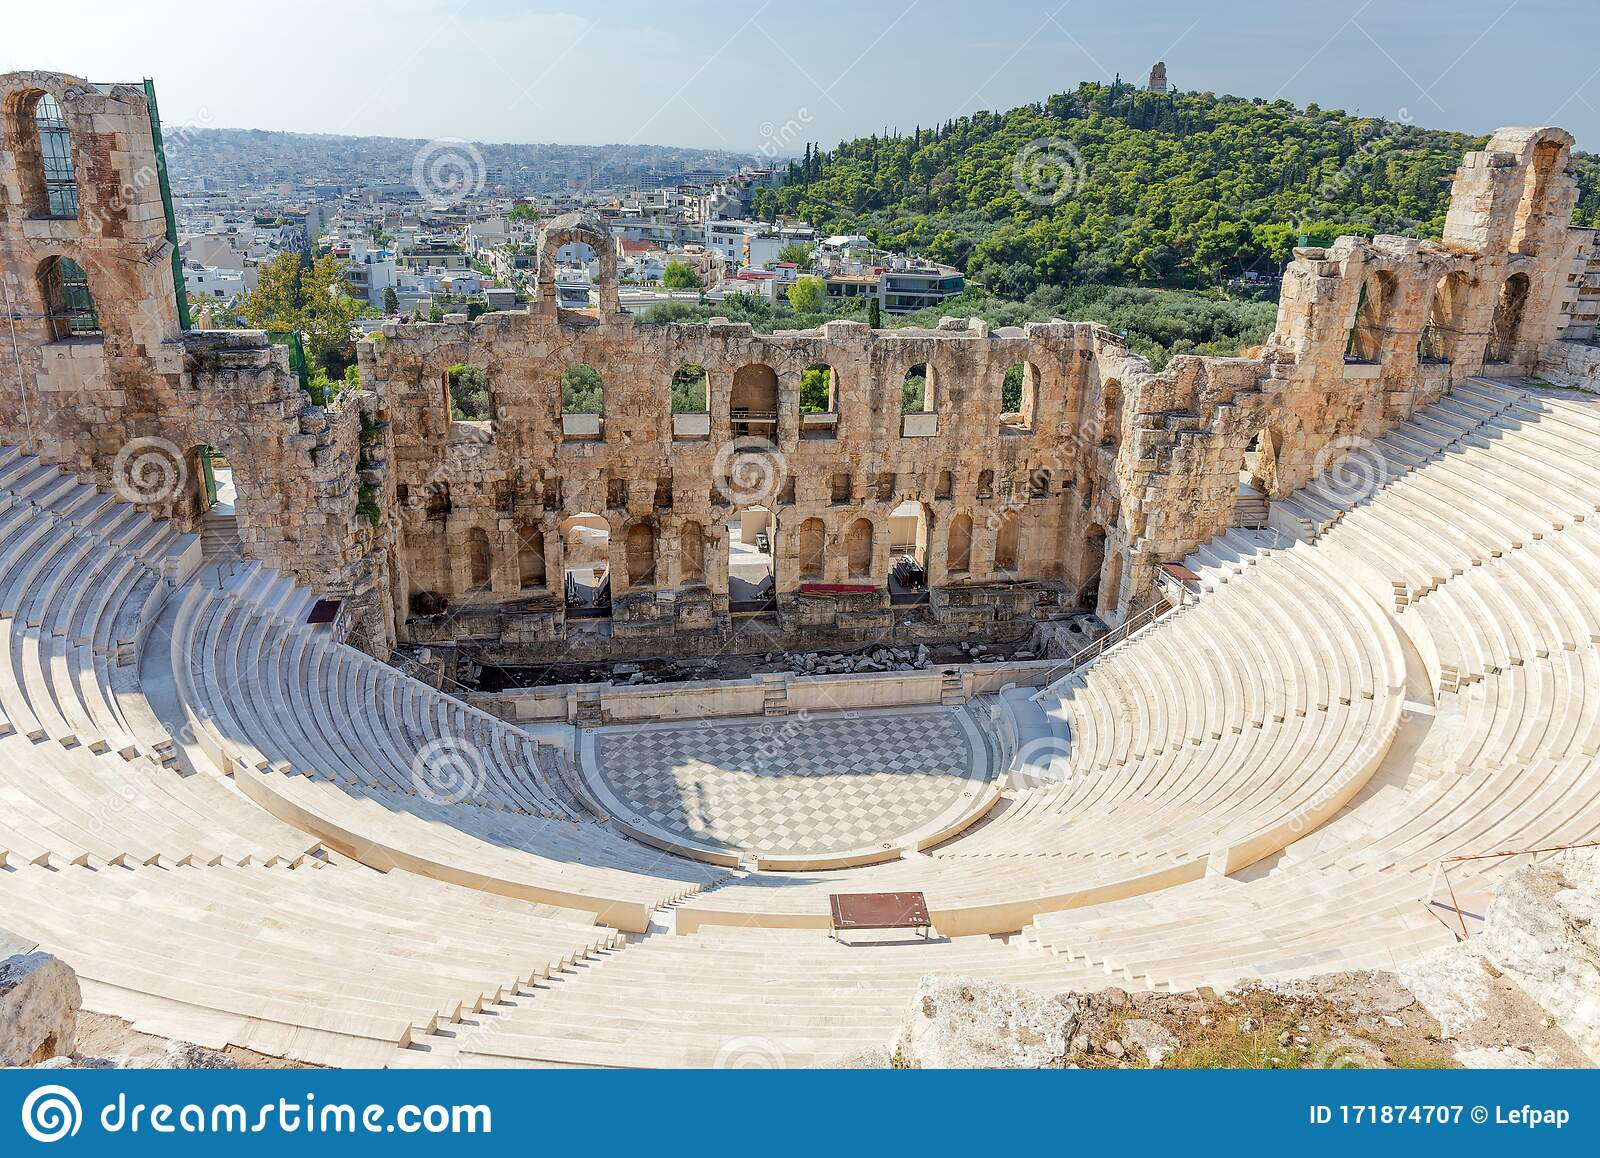 The Odeon Of Herodes Atticus Athens Greece Stock Image Image Of Archeology Herodes 171874707